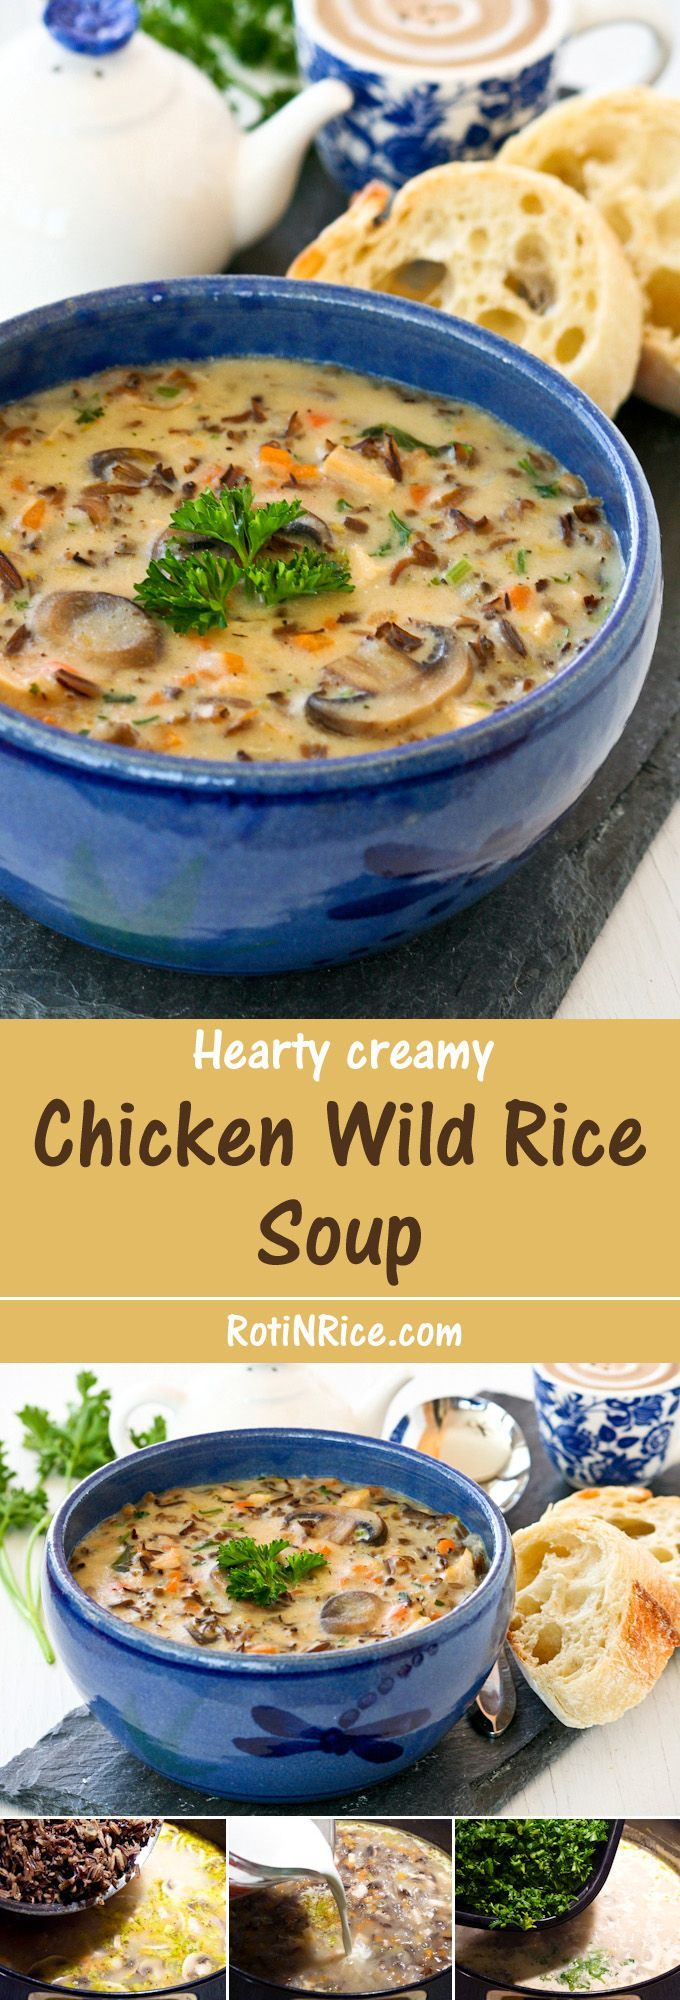 This Chicken Wild Rice Soup is a hearty creamy soup made with cooked chicken, nutty wild rice, and mushrooms. It is a bowl of comfort any time of the year. | RotiNRice.com